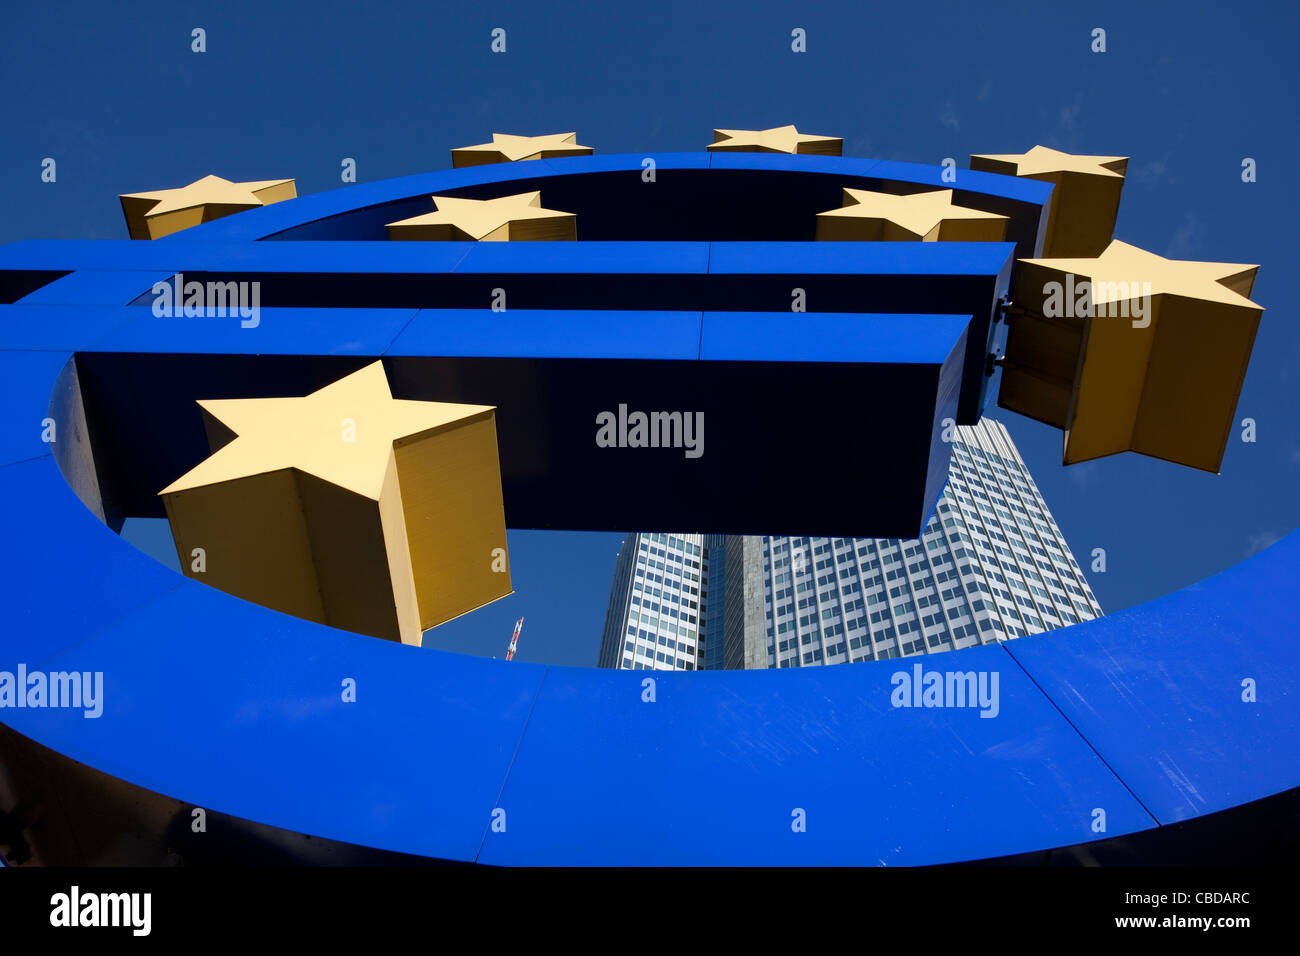 The Euro sign, the official currency of the Eurozone in the European Union. Photo:Jeff Gilbert - Stock Image